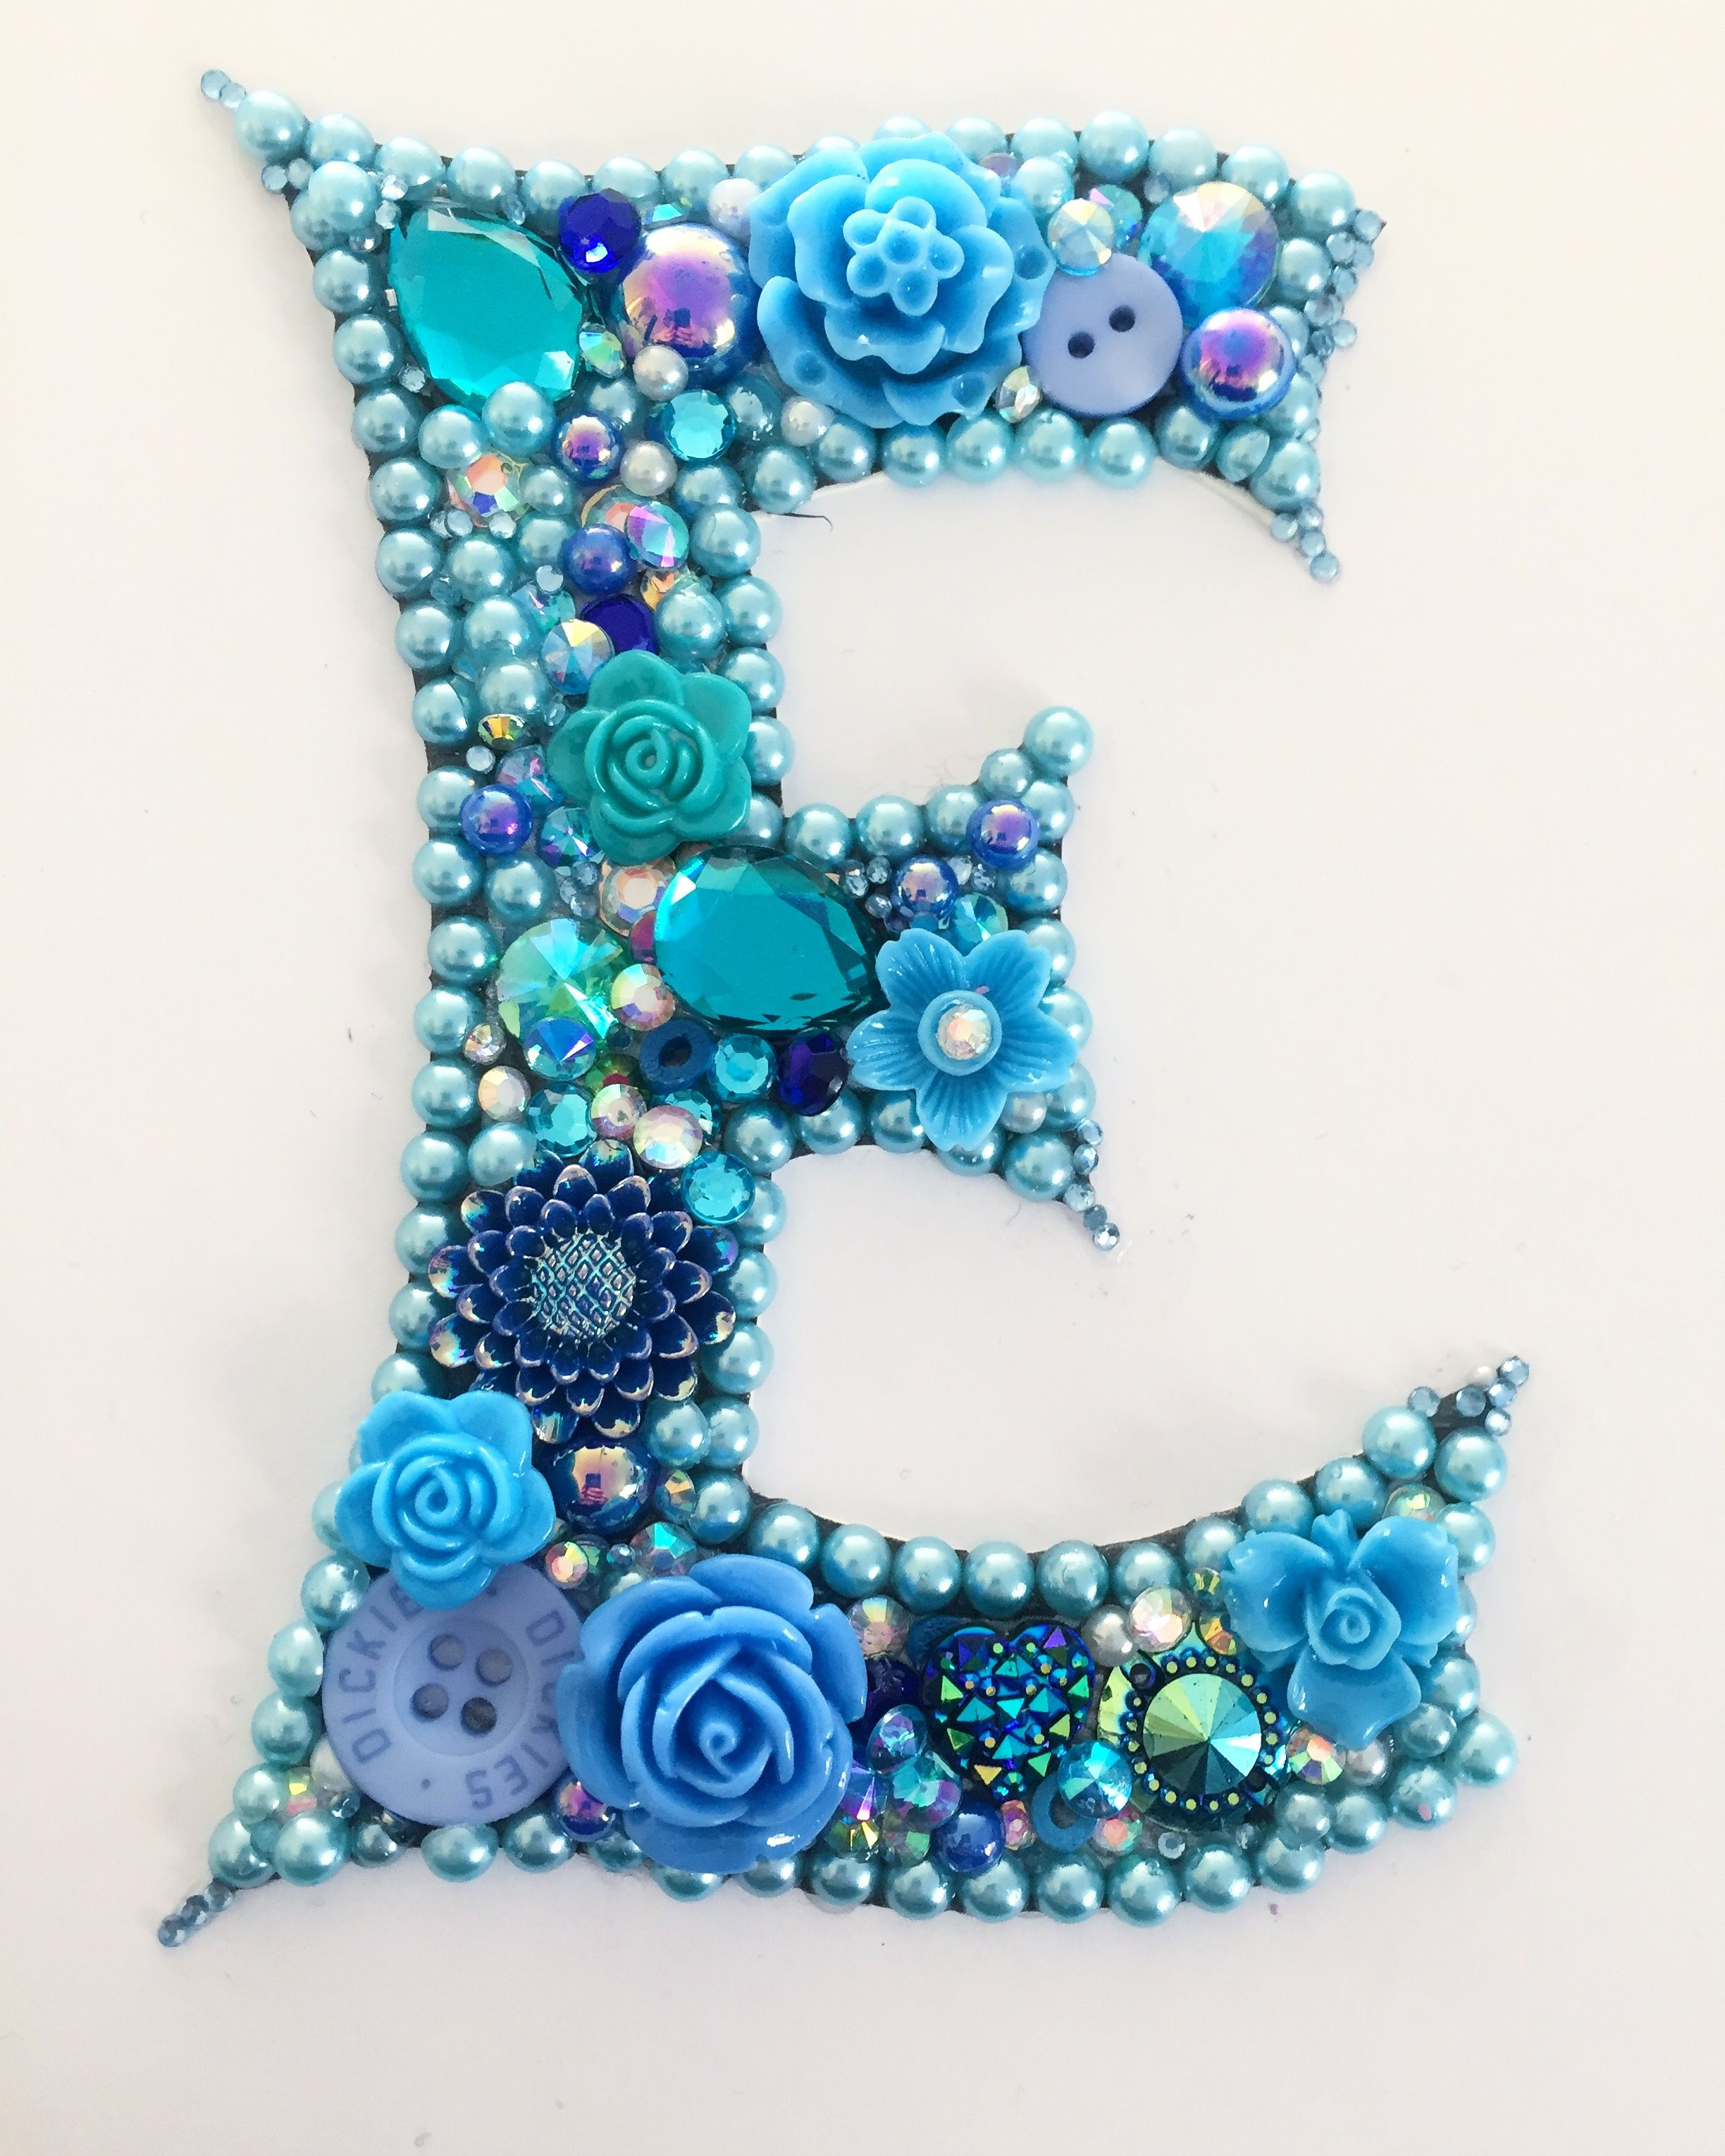 bespoke initials made to order  super sparkly prettiness